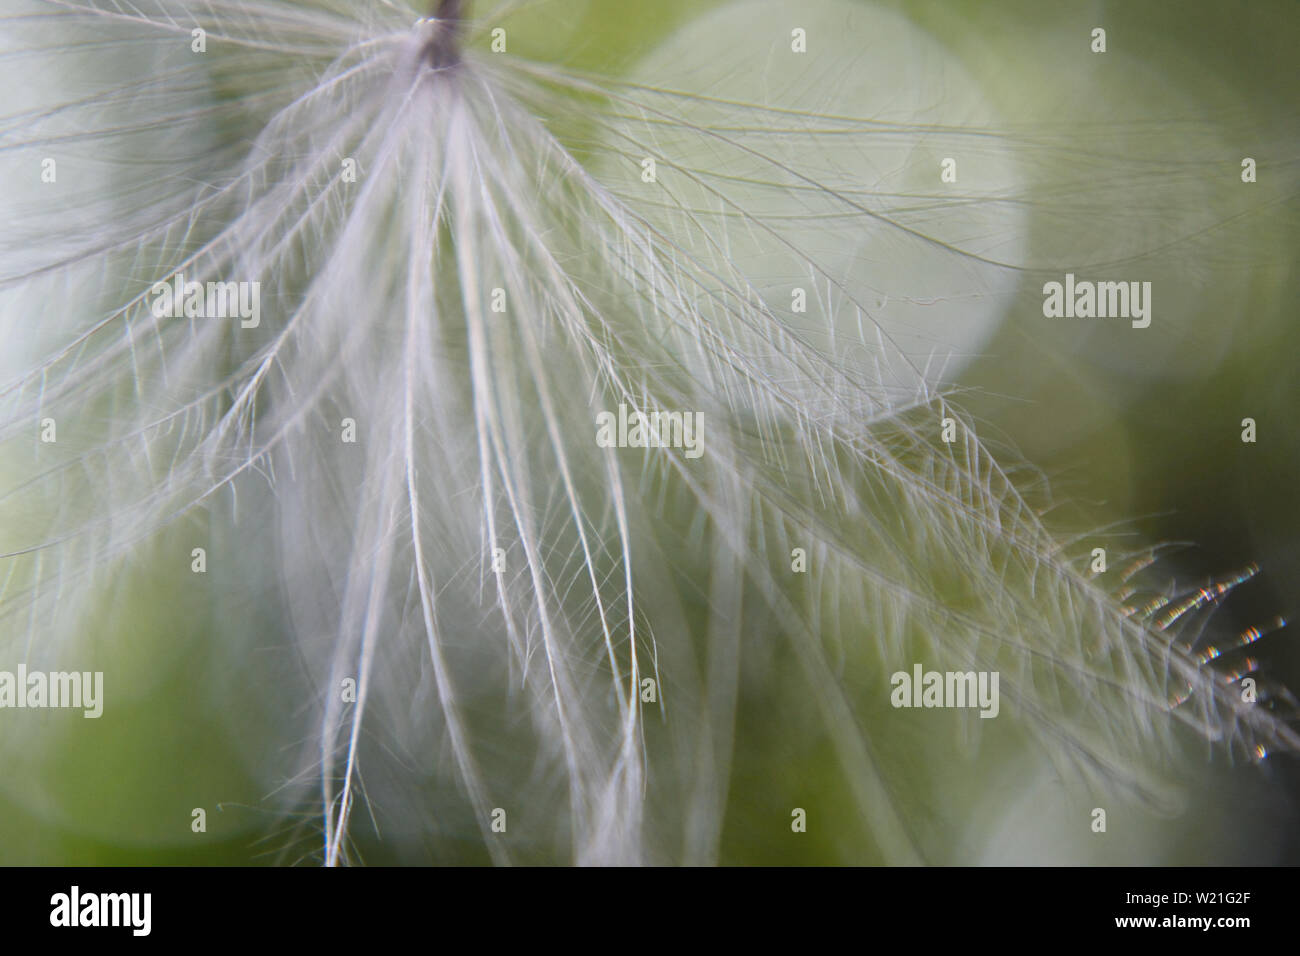 Close up of pappus - Stock Image